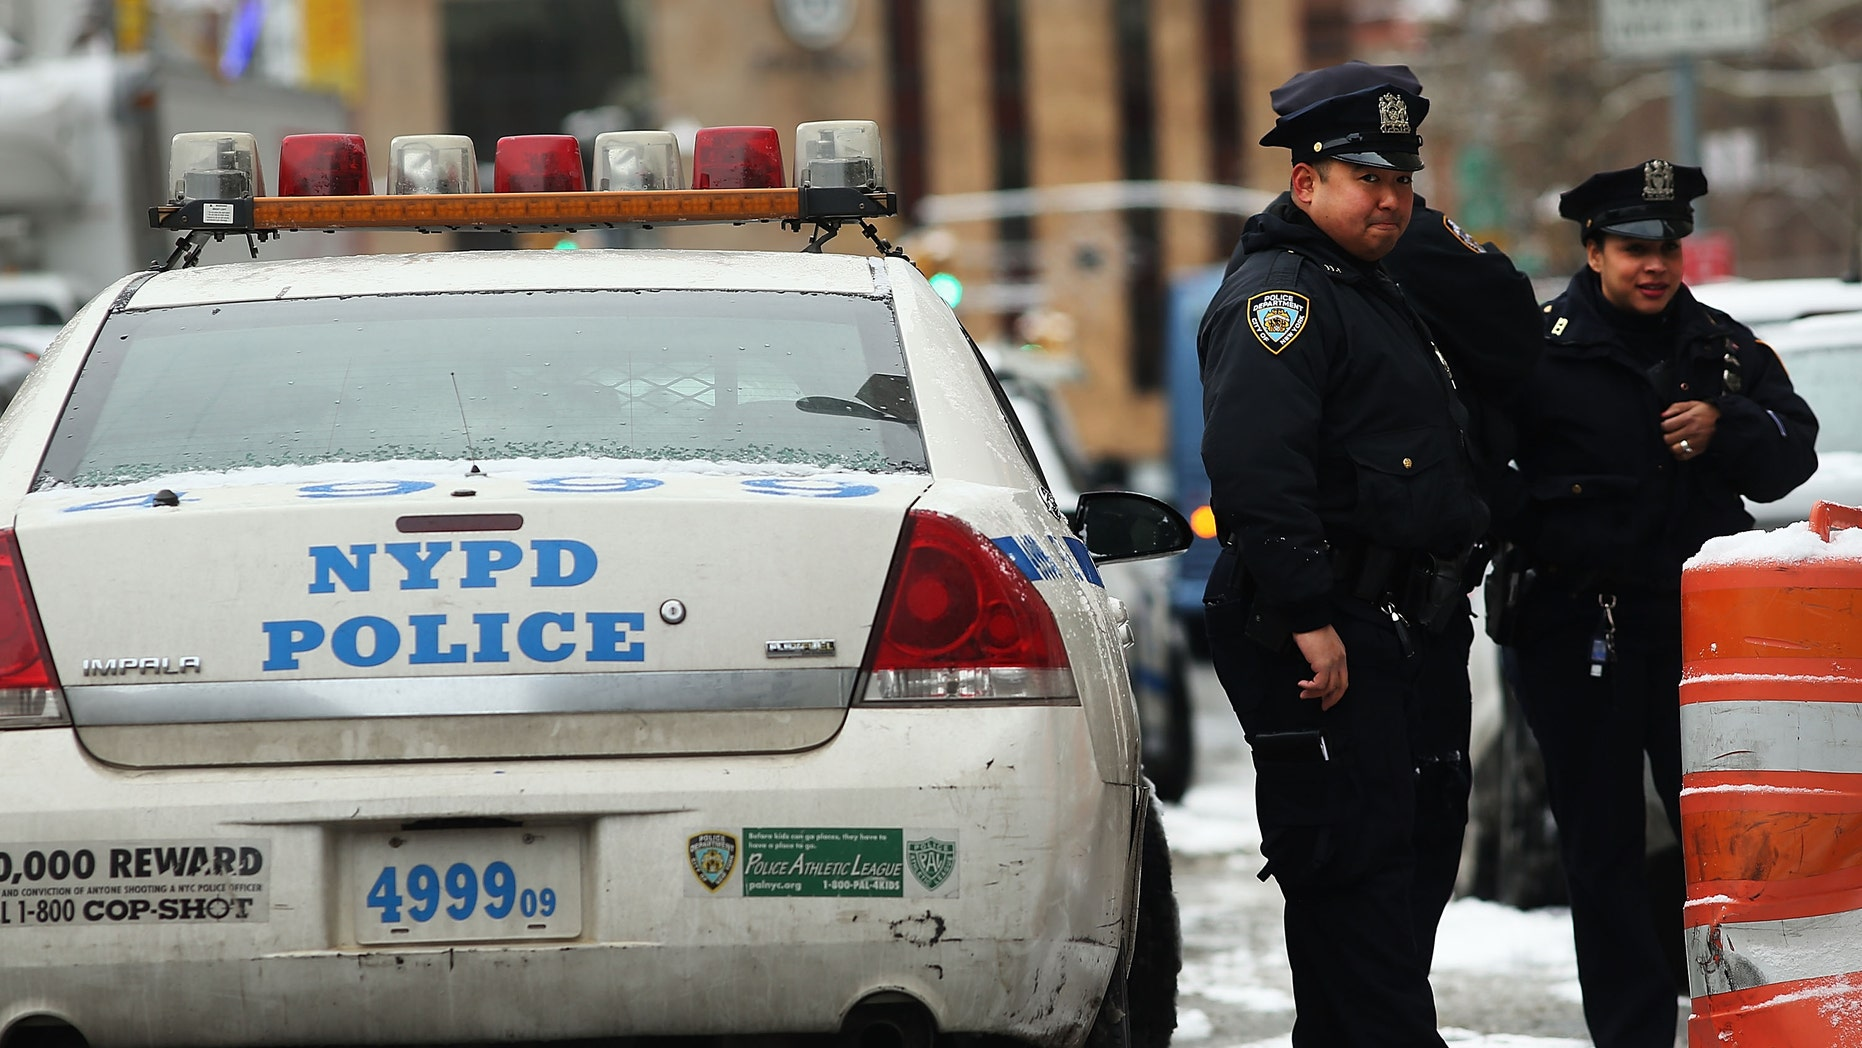 NEW YORK, NY - JANUARY 09:  Police patrol outside of a Manhattan court house for the sentencing of convicted terrorist Mustafa Kamel Mustafa on January 9, 2015 in New York City. Mustafa, a 56 year old British cleric, faces a likely life sentence after his May conviction for charges in plots to kidnap tourists in Yemen in 1998 and to construct a terrorist training camp in Oregon. (Photo by Spencer Platt/Getty Images).